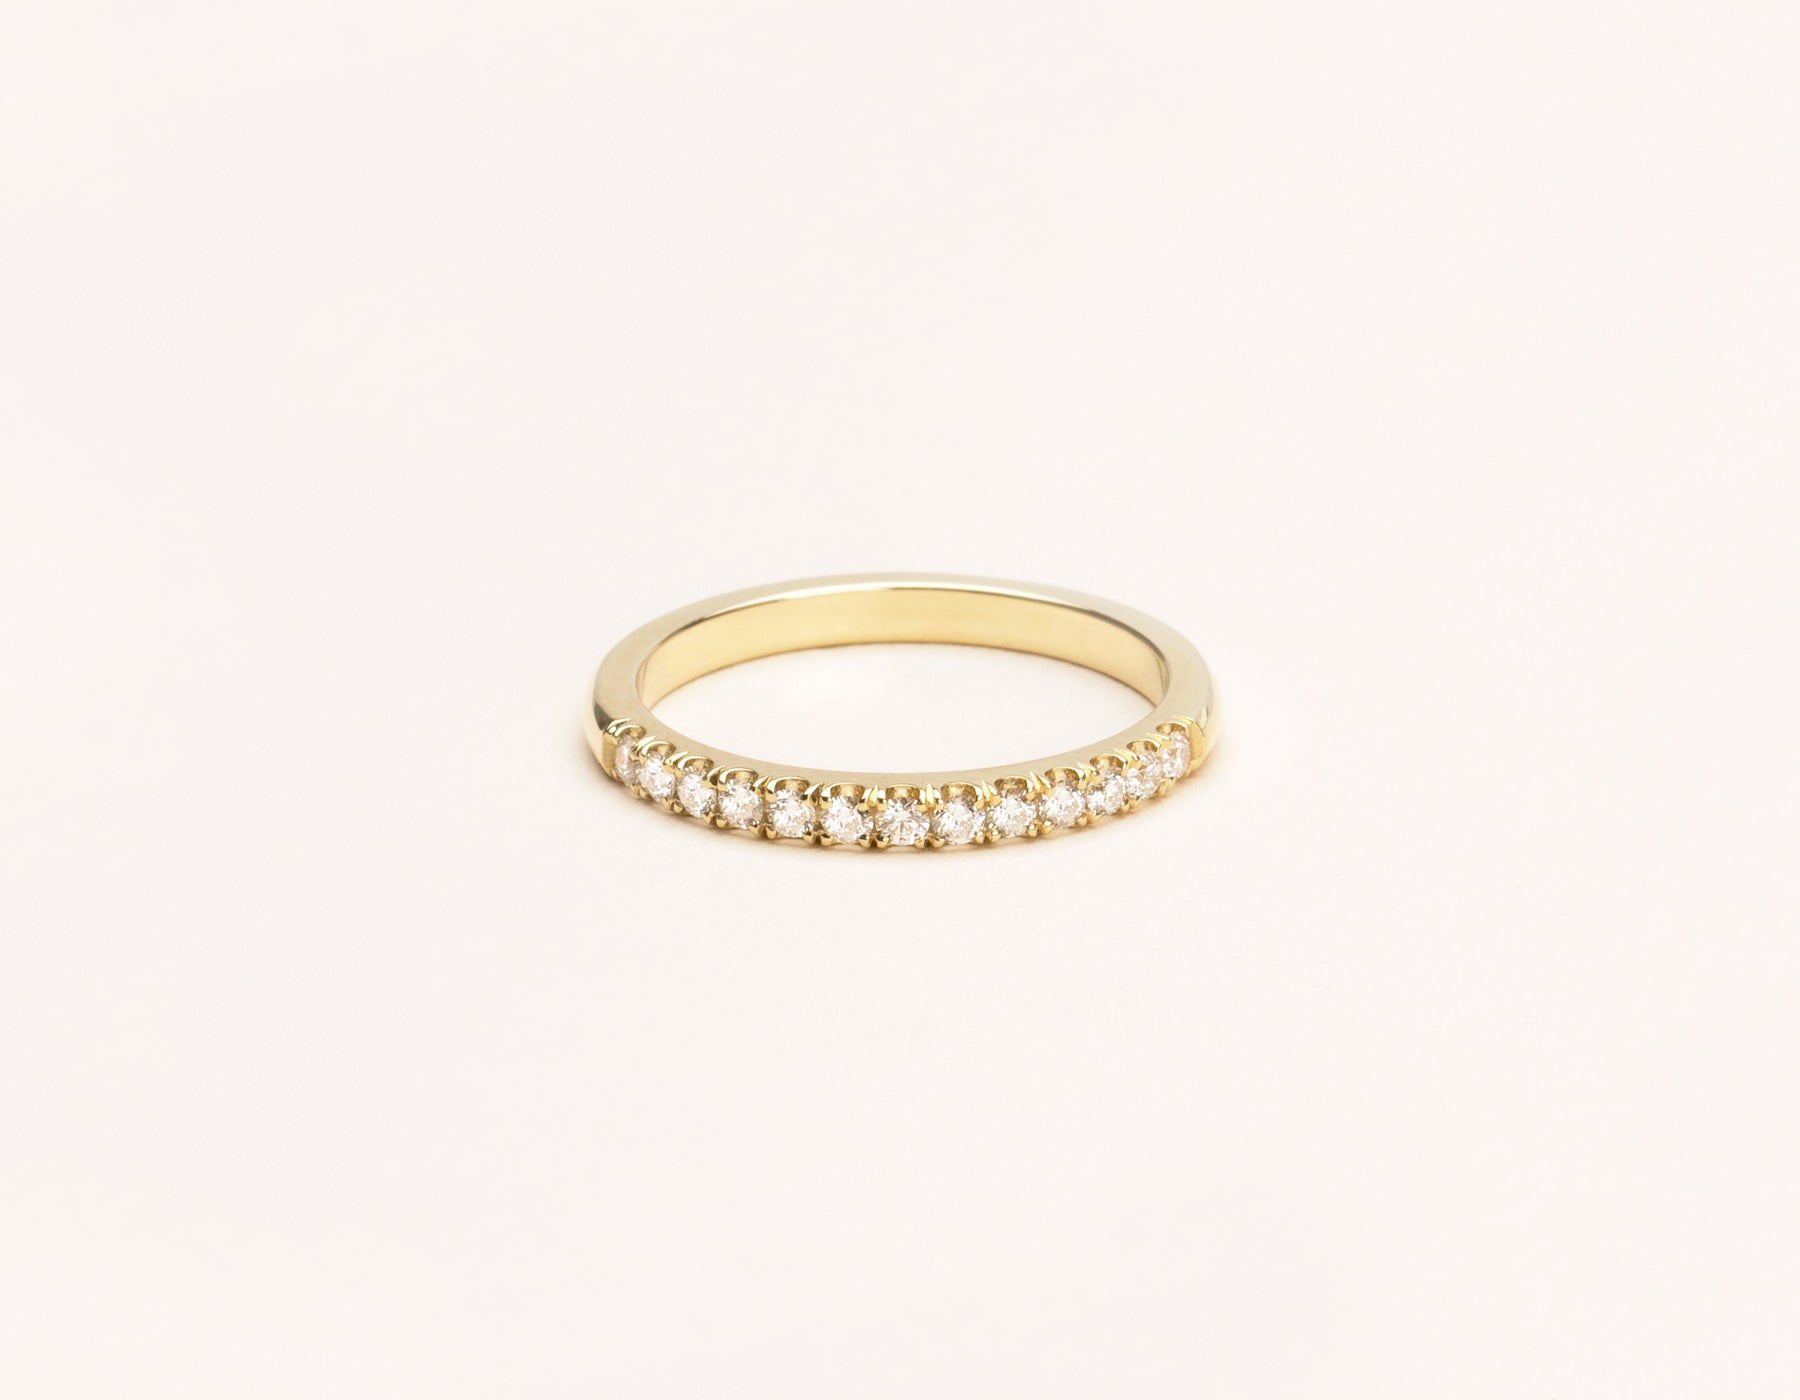 Simple classic 14k solid gold Large Diamond Band Vrai & Oro, 14K Yellow Gold